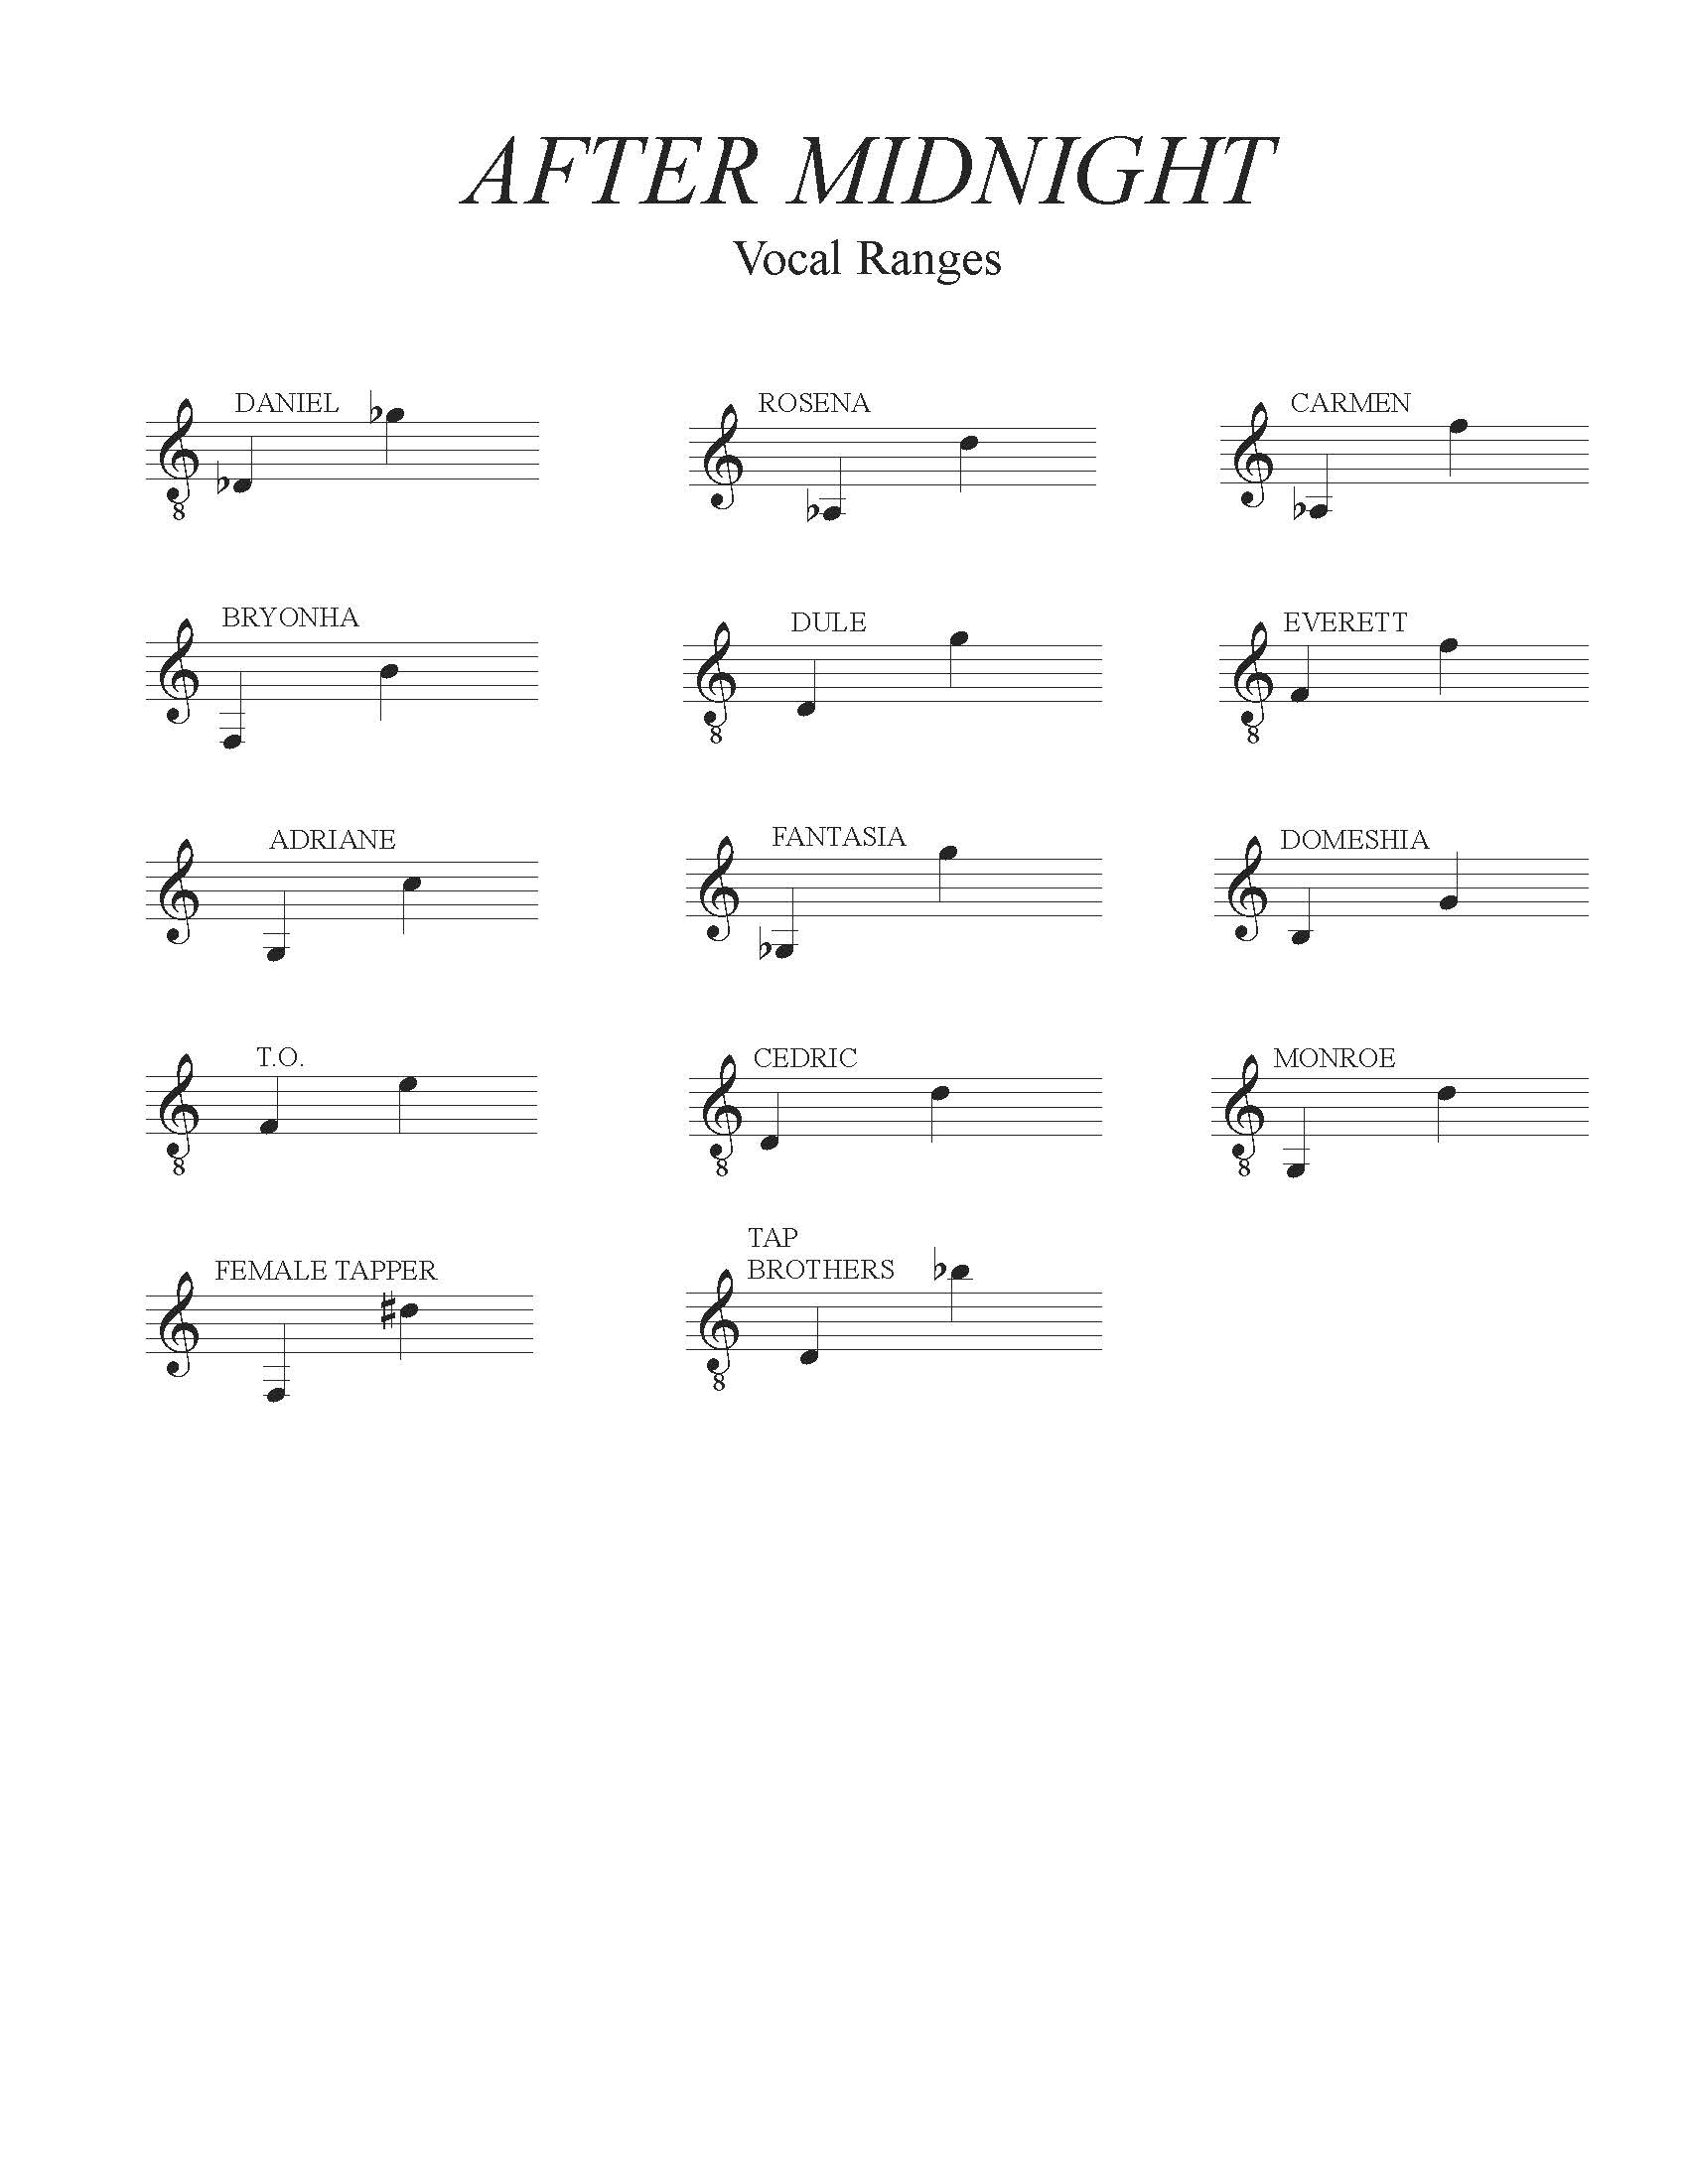 After Midnight Vocal Ranges